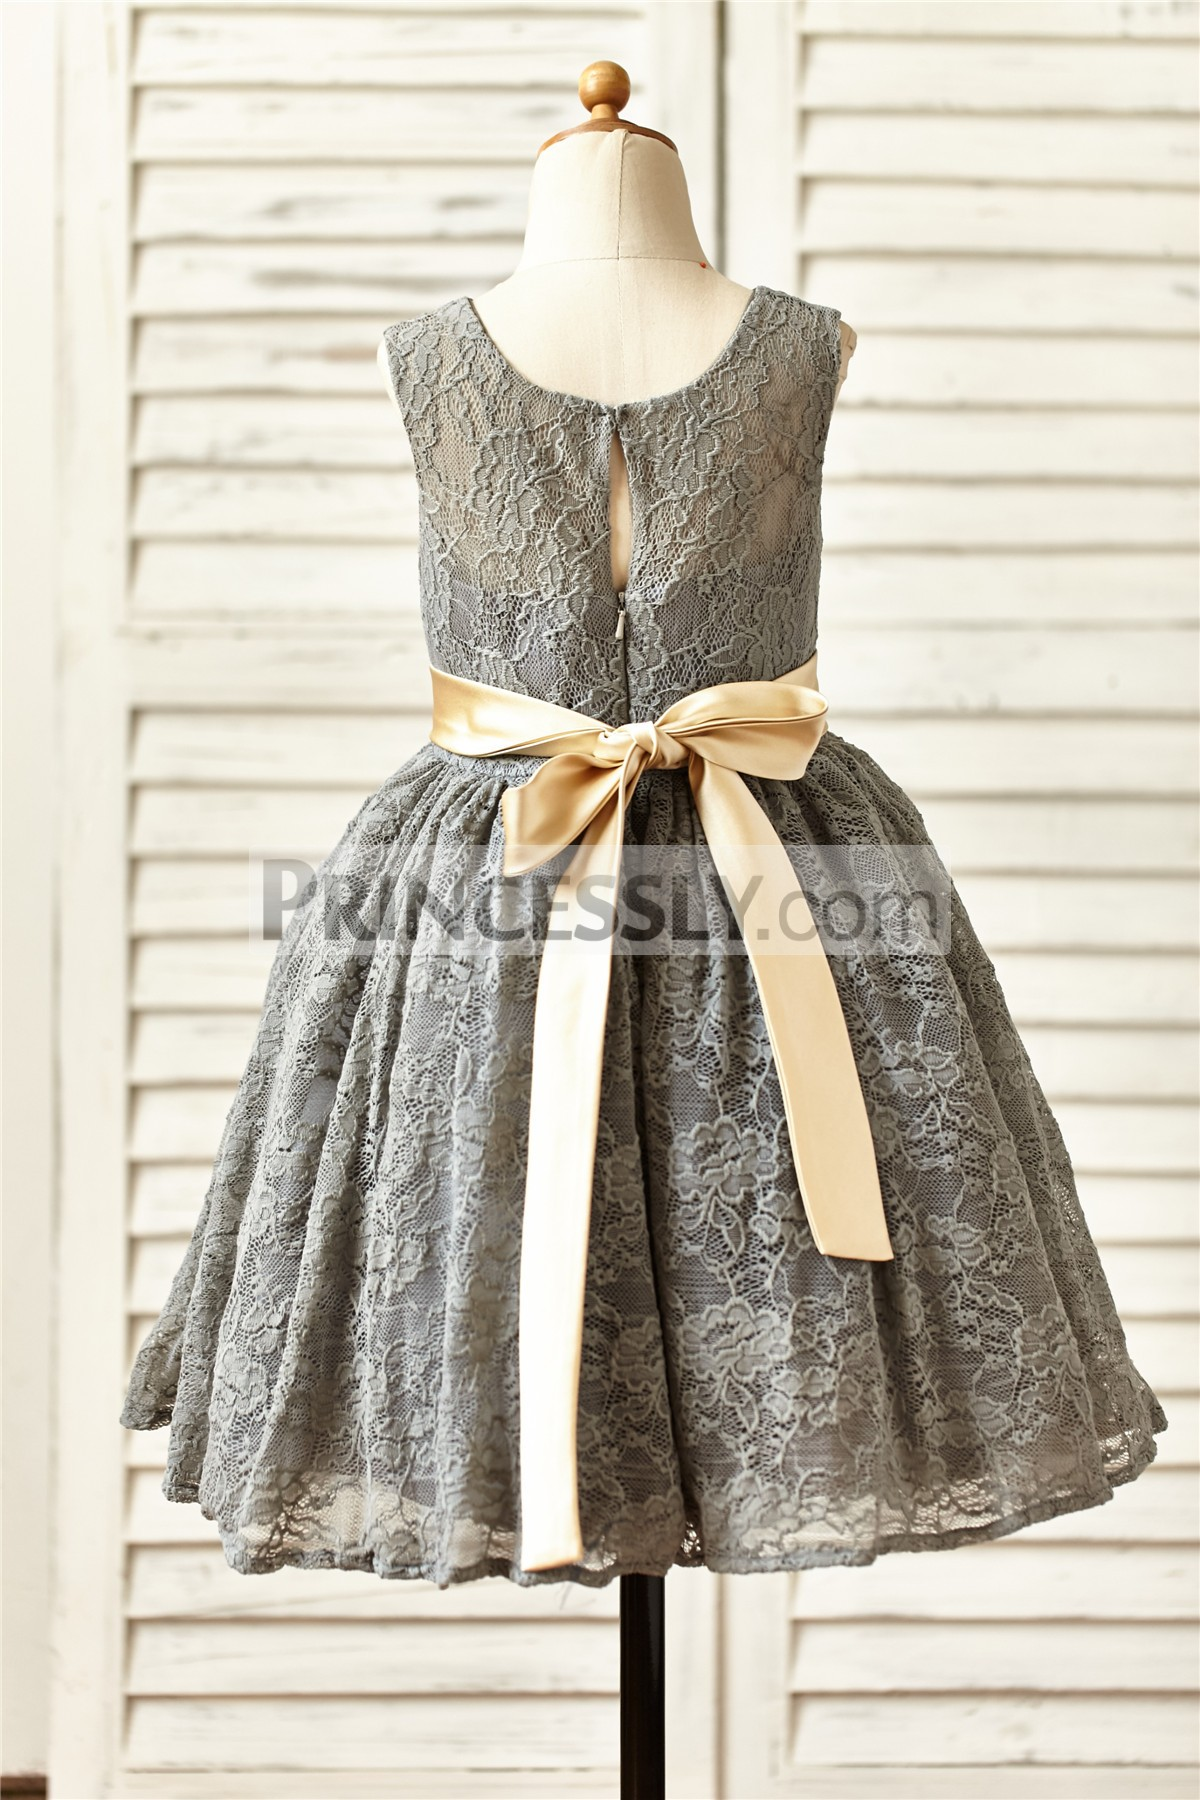 Gray lace puffy skirt wedding baby girl dress with champagne sash